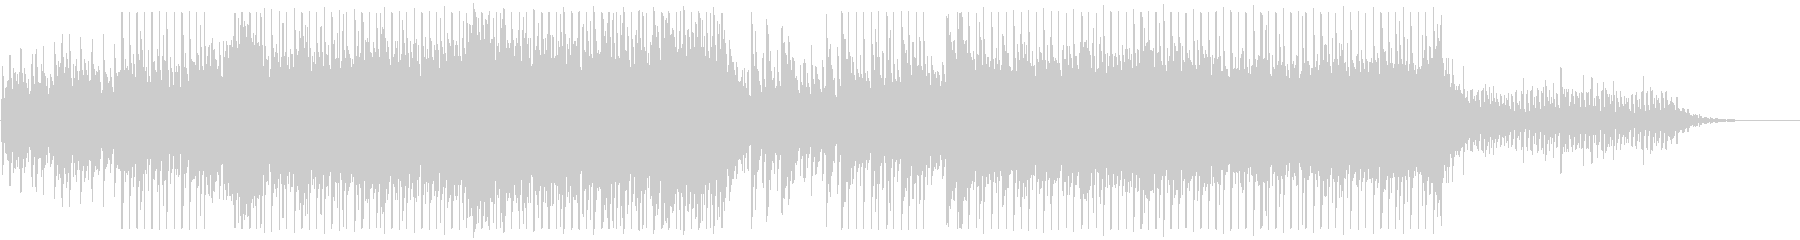 BGM with a beautiful piano's unreproduced waveform